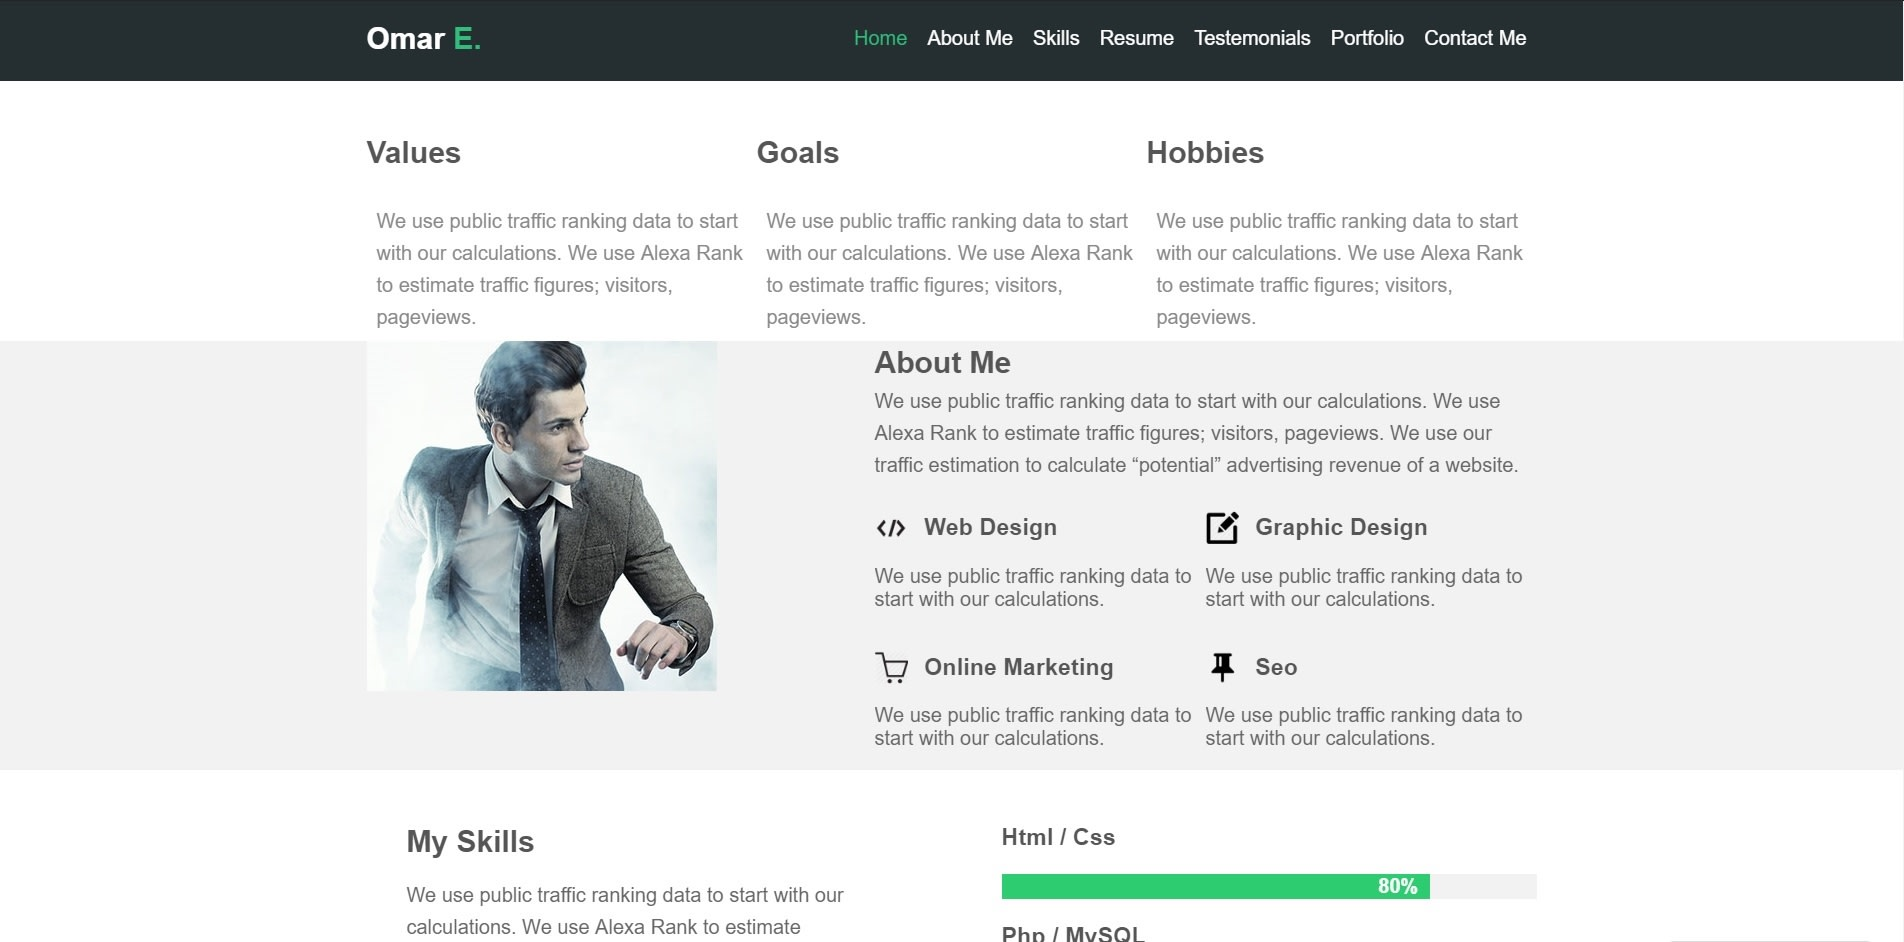 Design A Good Website Using Html And Css With Good Style By Omaressam2